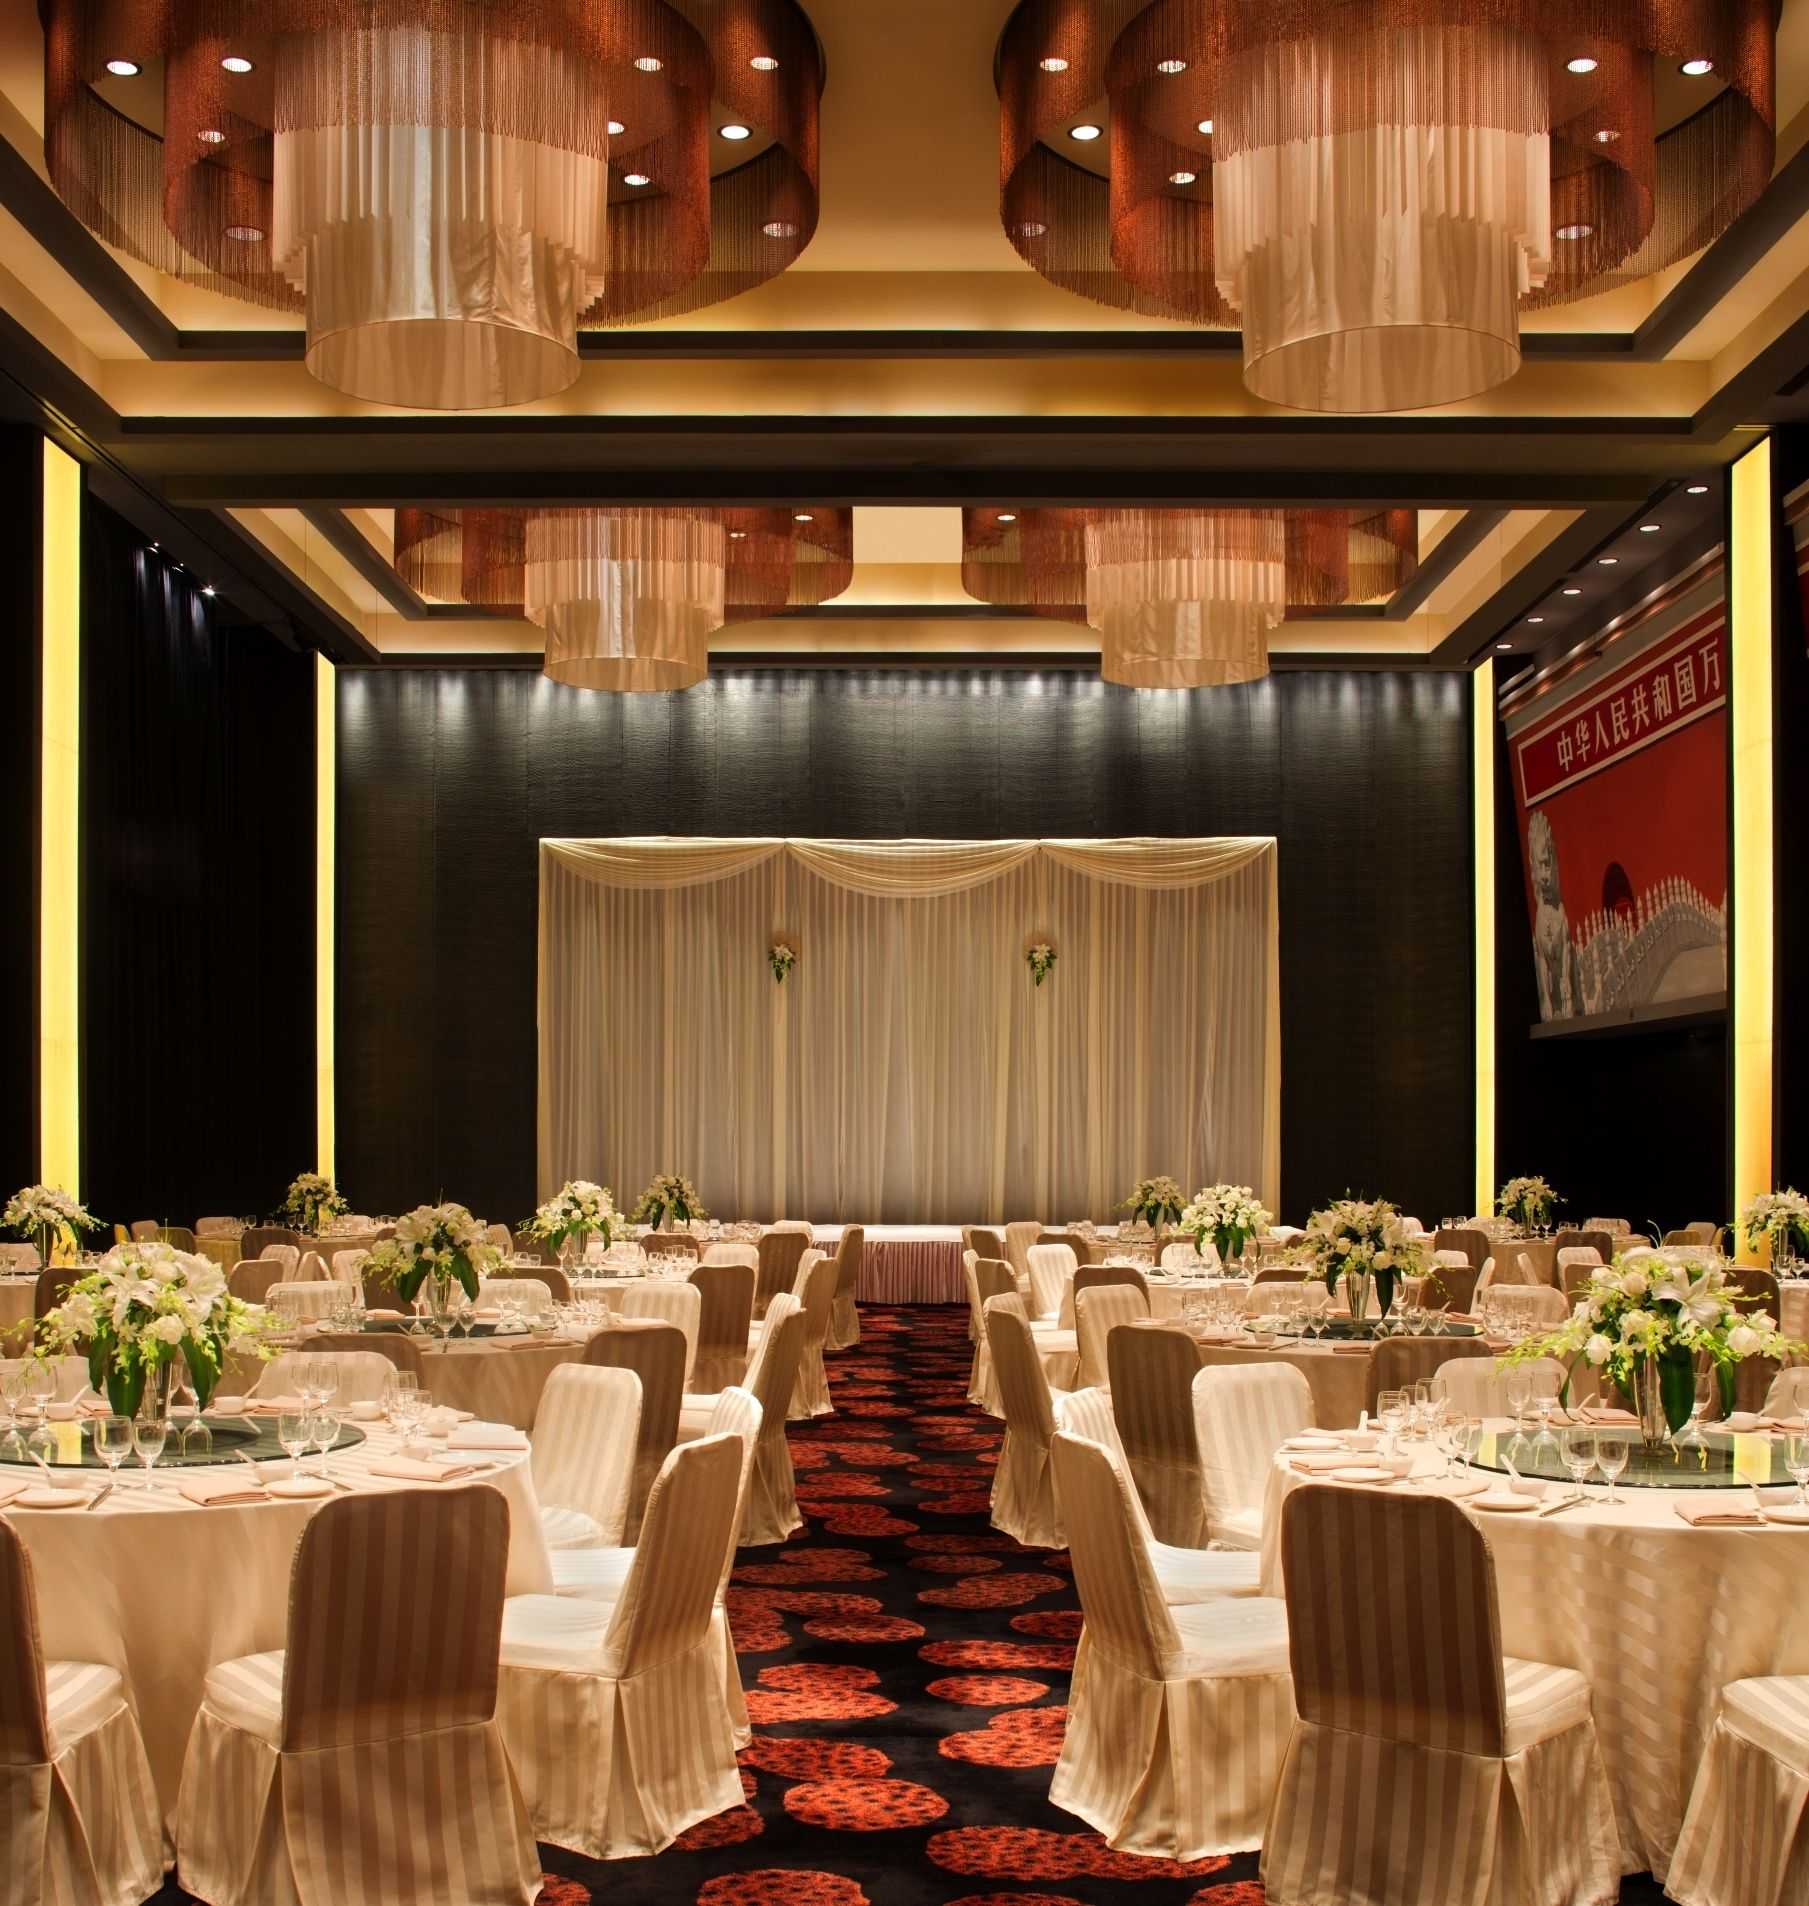 Banquet Hall With Images Banquet Hall Hotel Inspiration Hotel